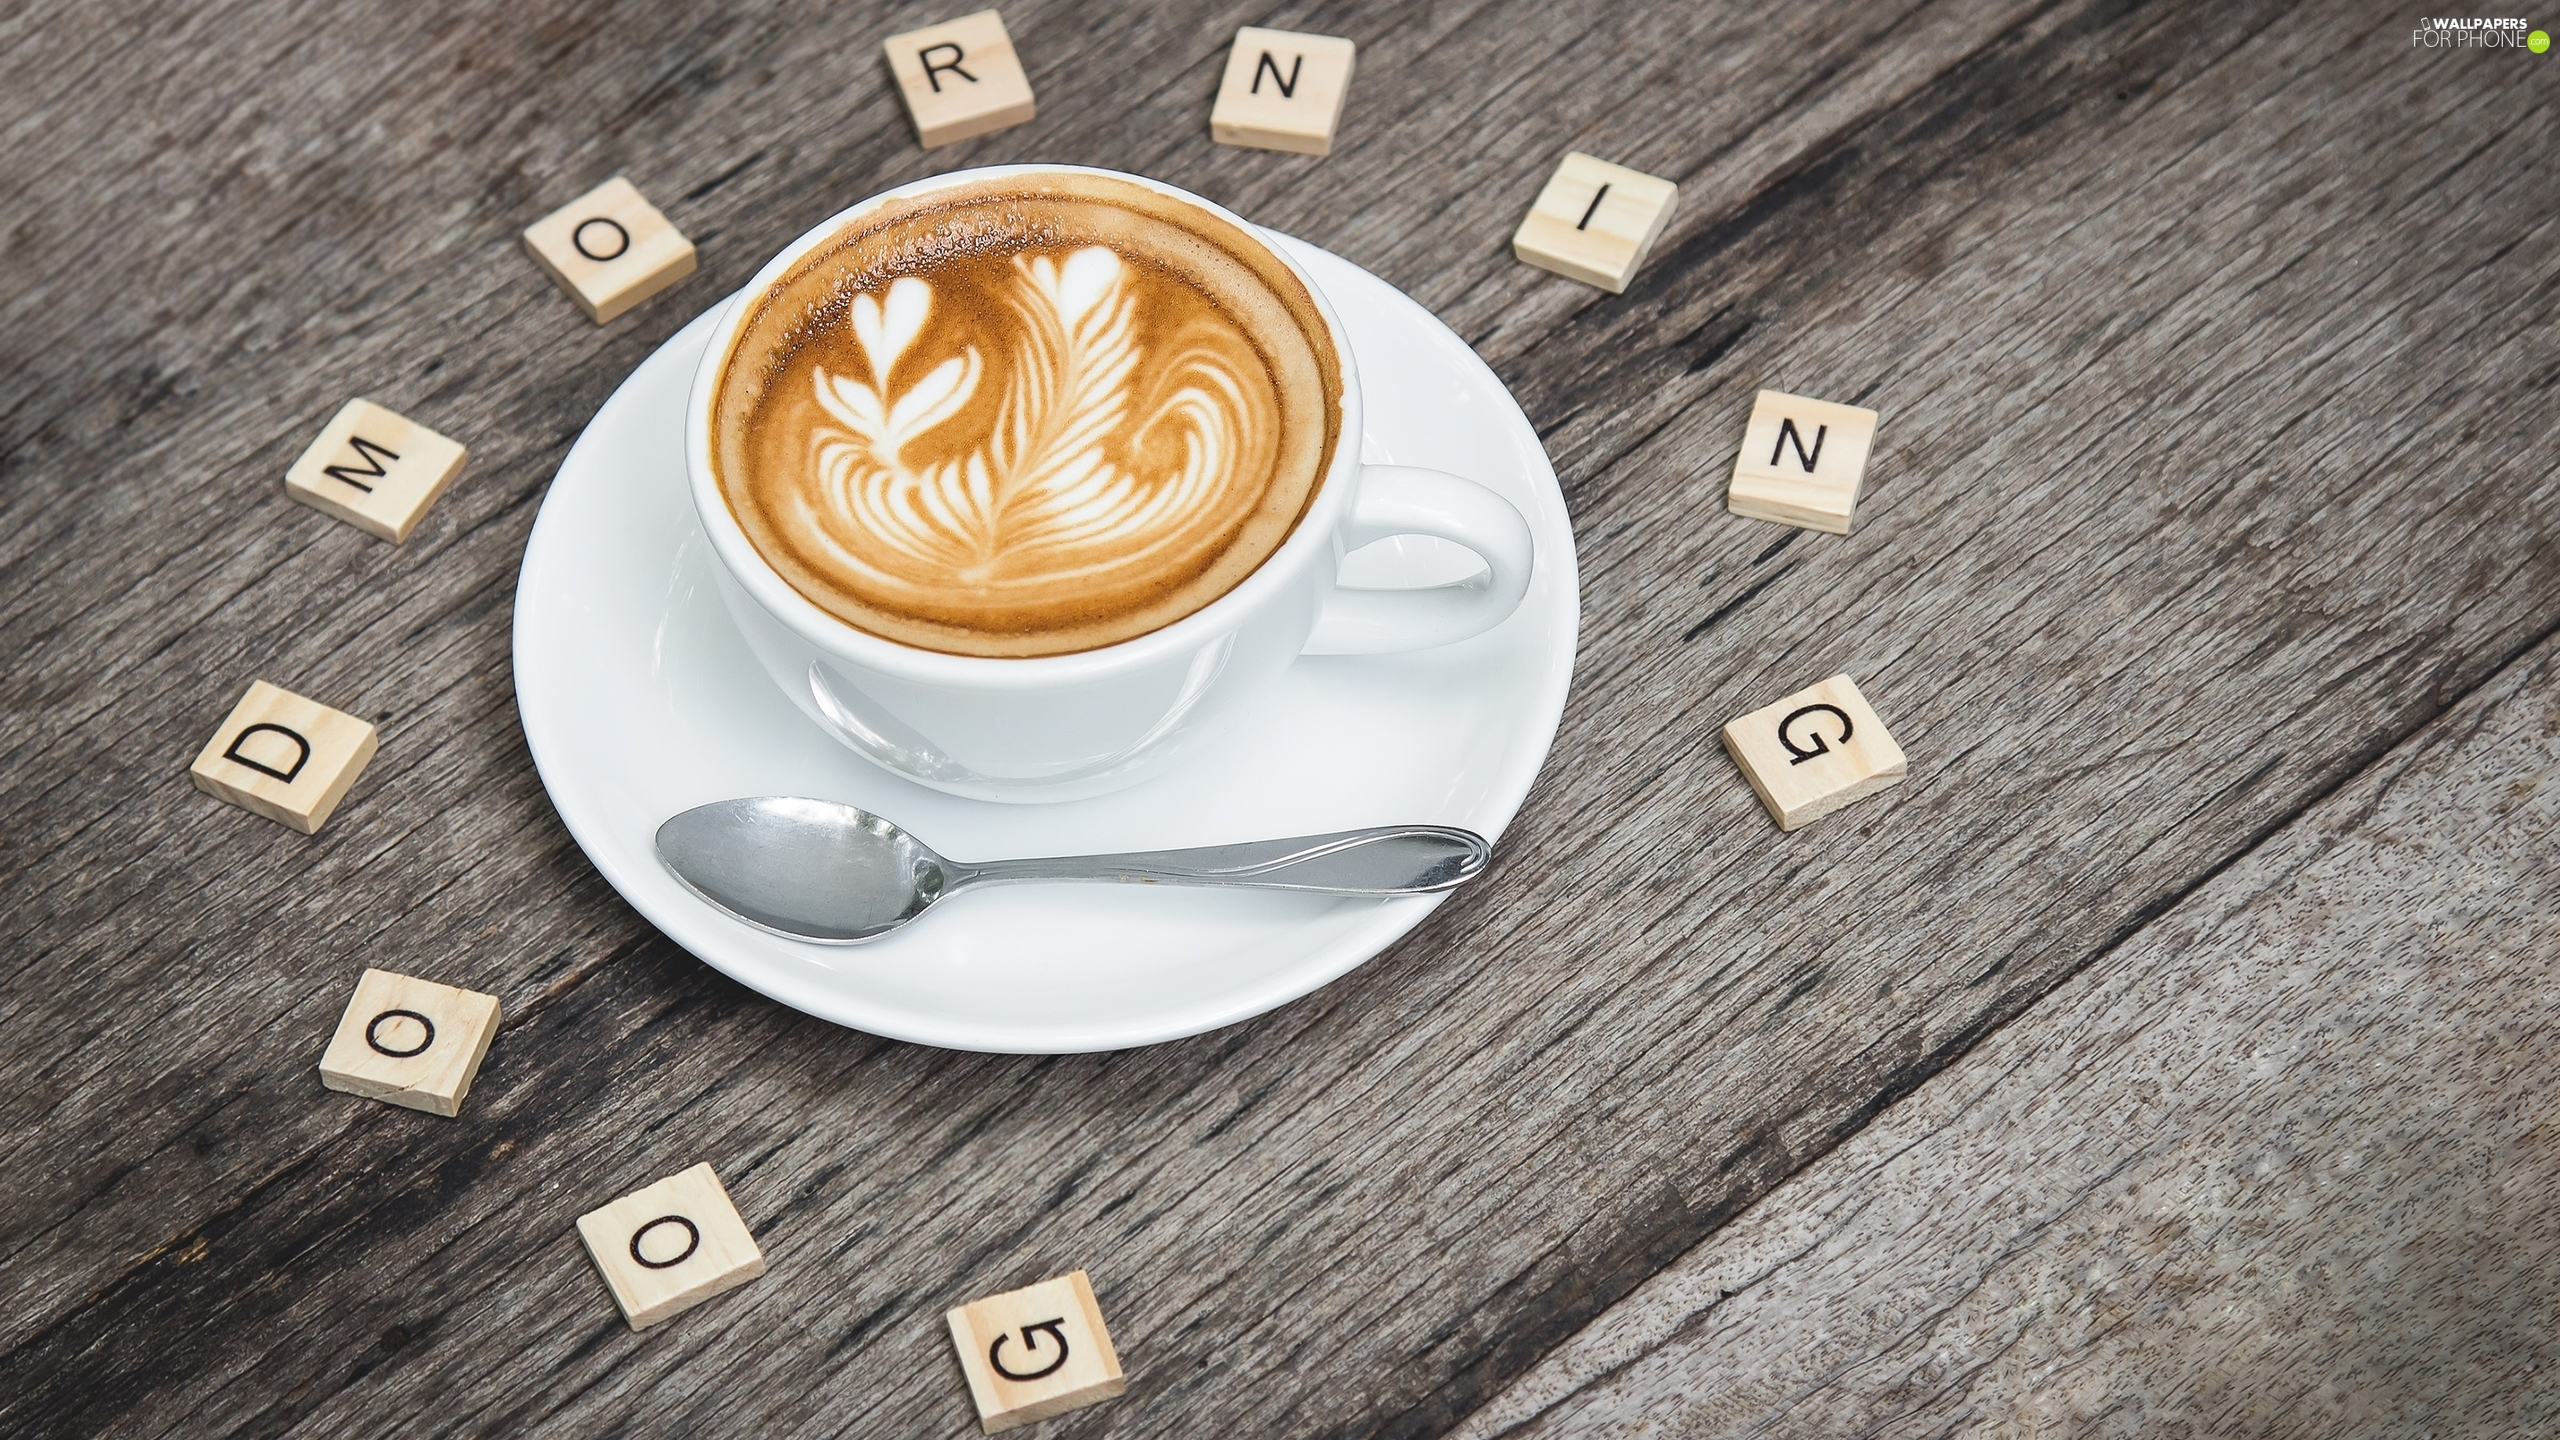 cup, teaspoon, Good Morning, Scrabble, Good morning, cappuccino, coffee, text